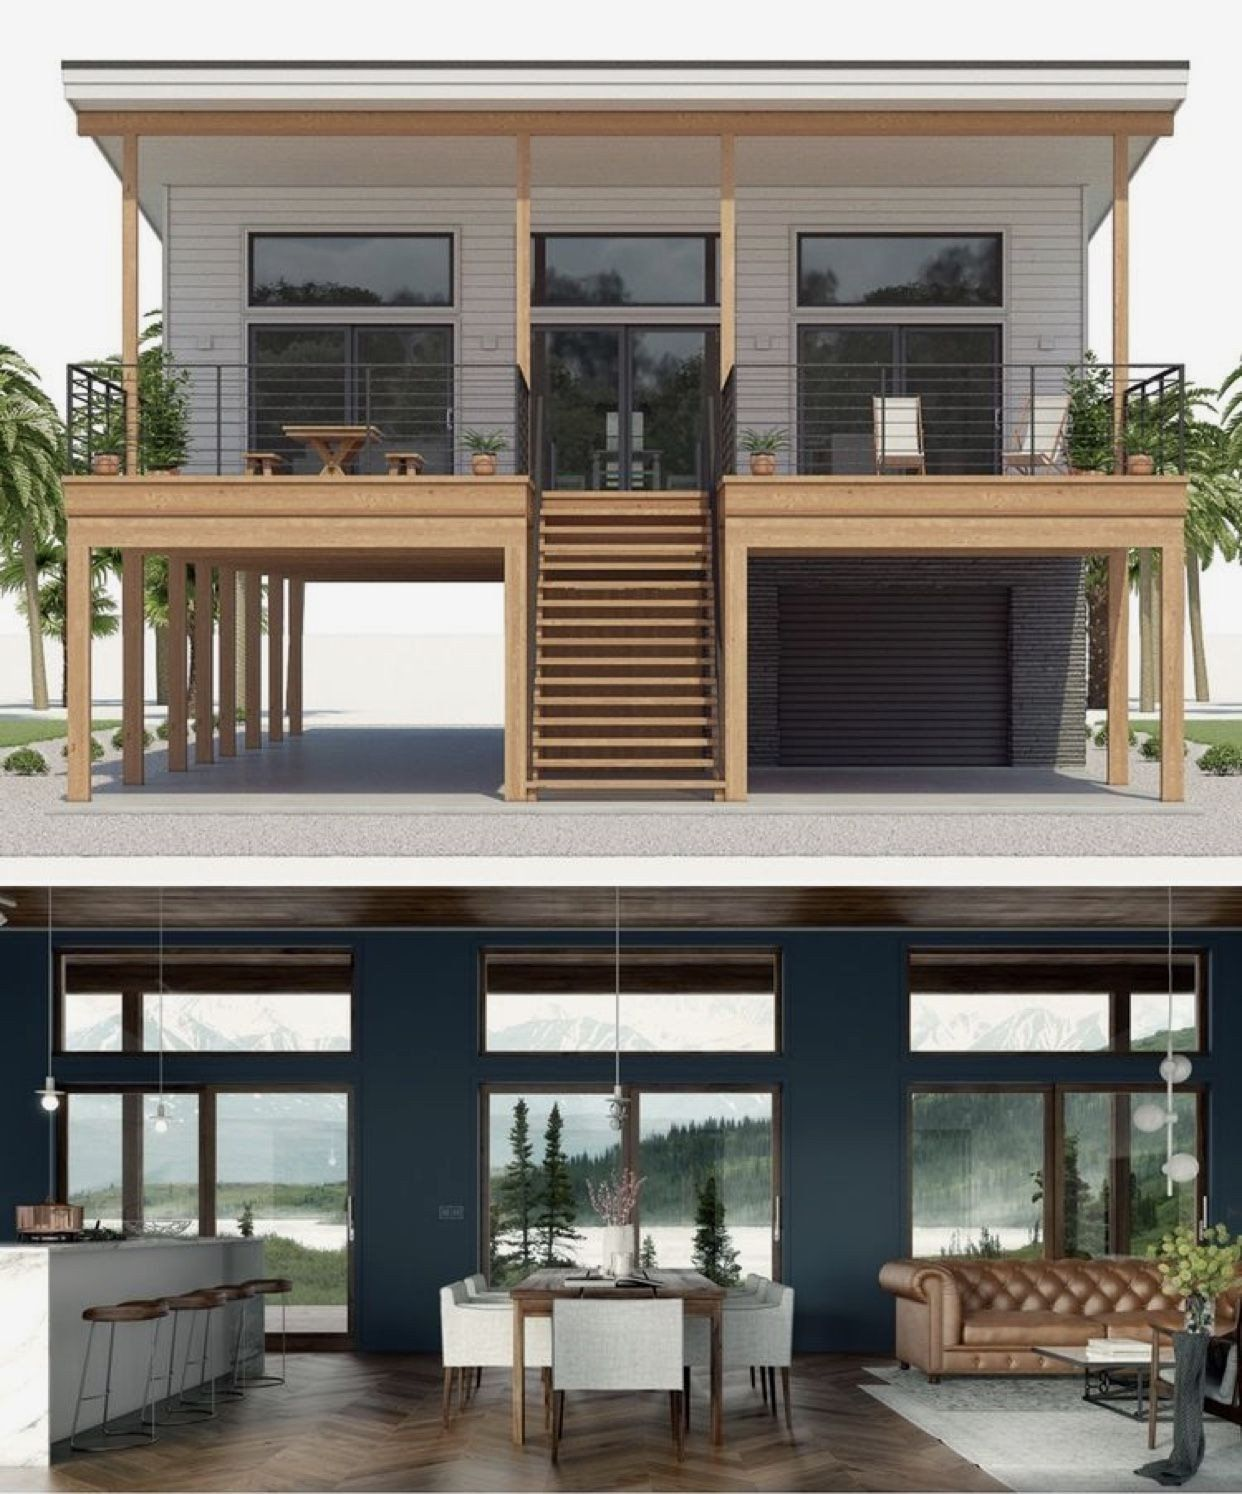 Modern House Plans On Pilings What A Wonderful Space in ...